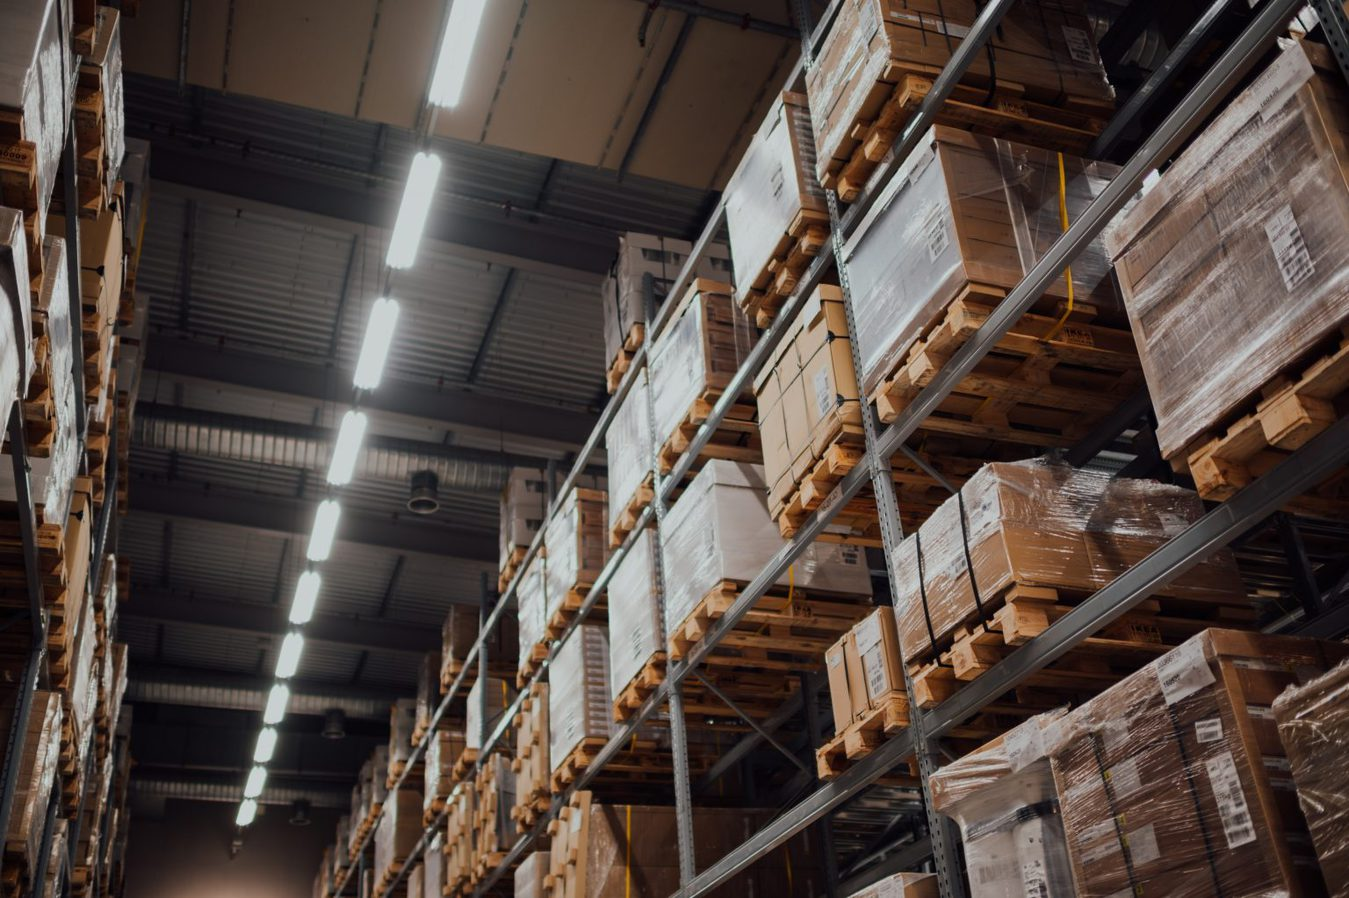 warehouse shelves filled with boxes